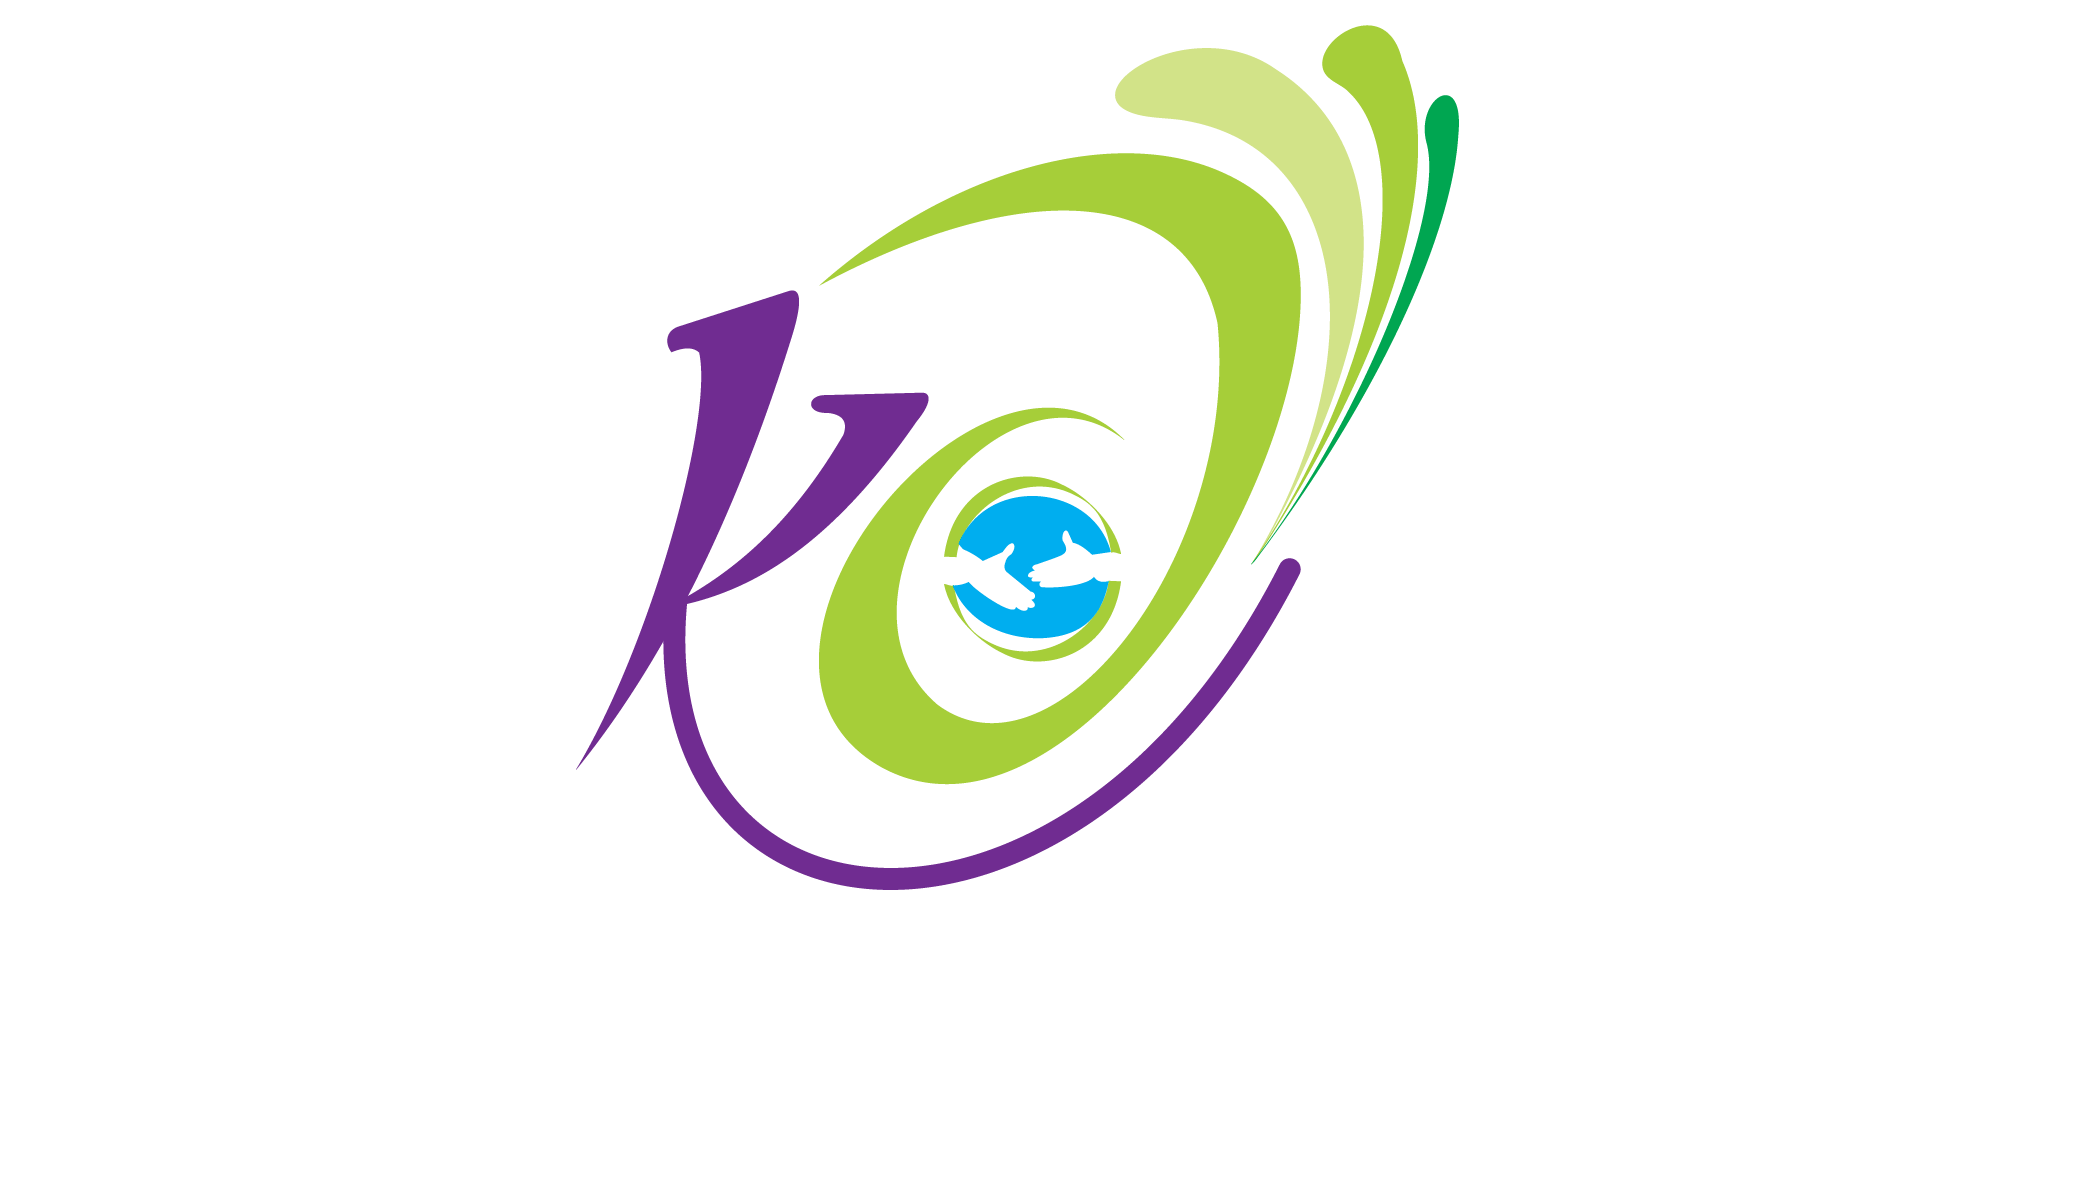 K.D.Services : Marketing & Advertising Agency